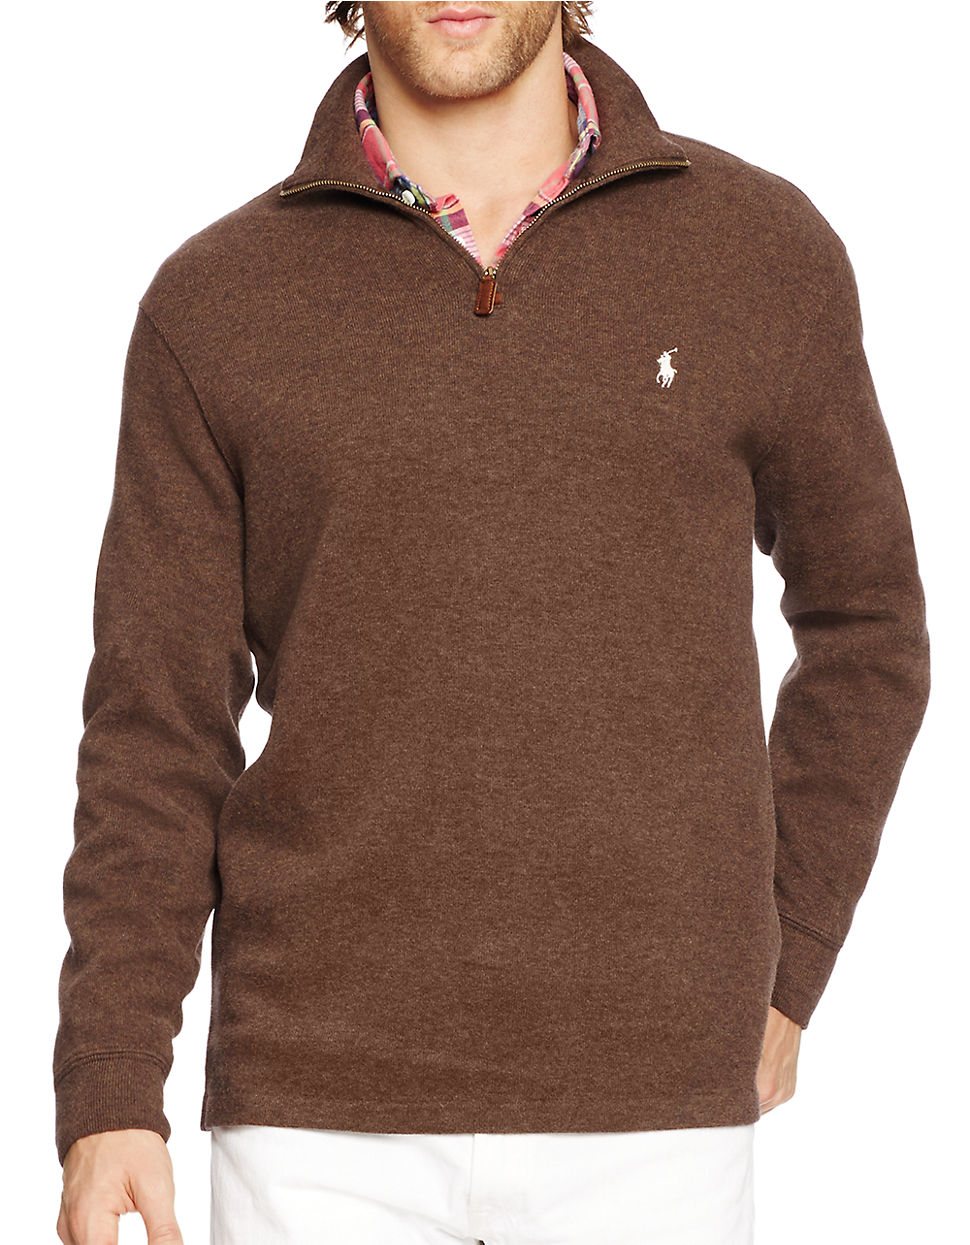 polo ralph lauren french rib half zip pullover in brown. Black Bedroom Furniture Sets. Home Design Ideas